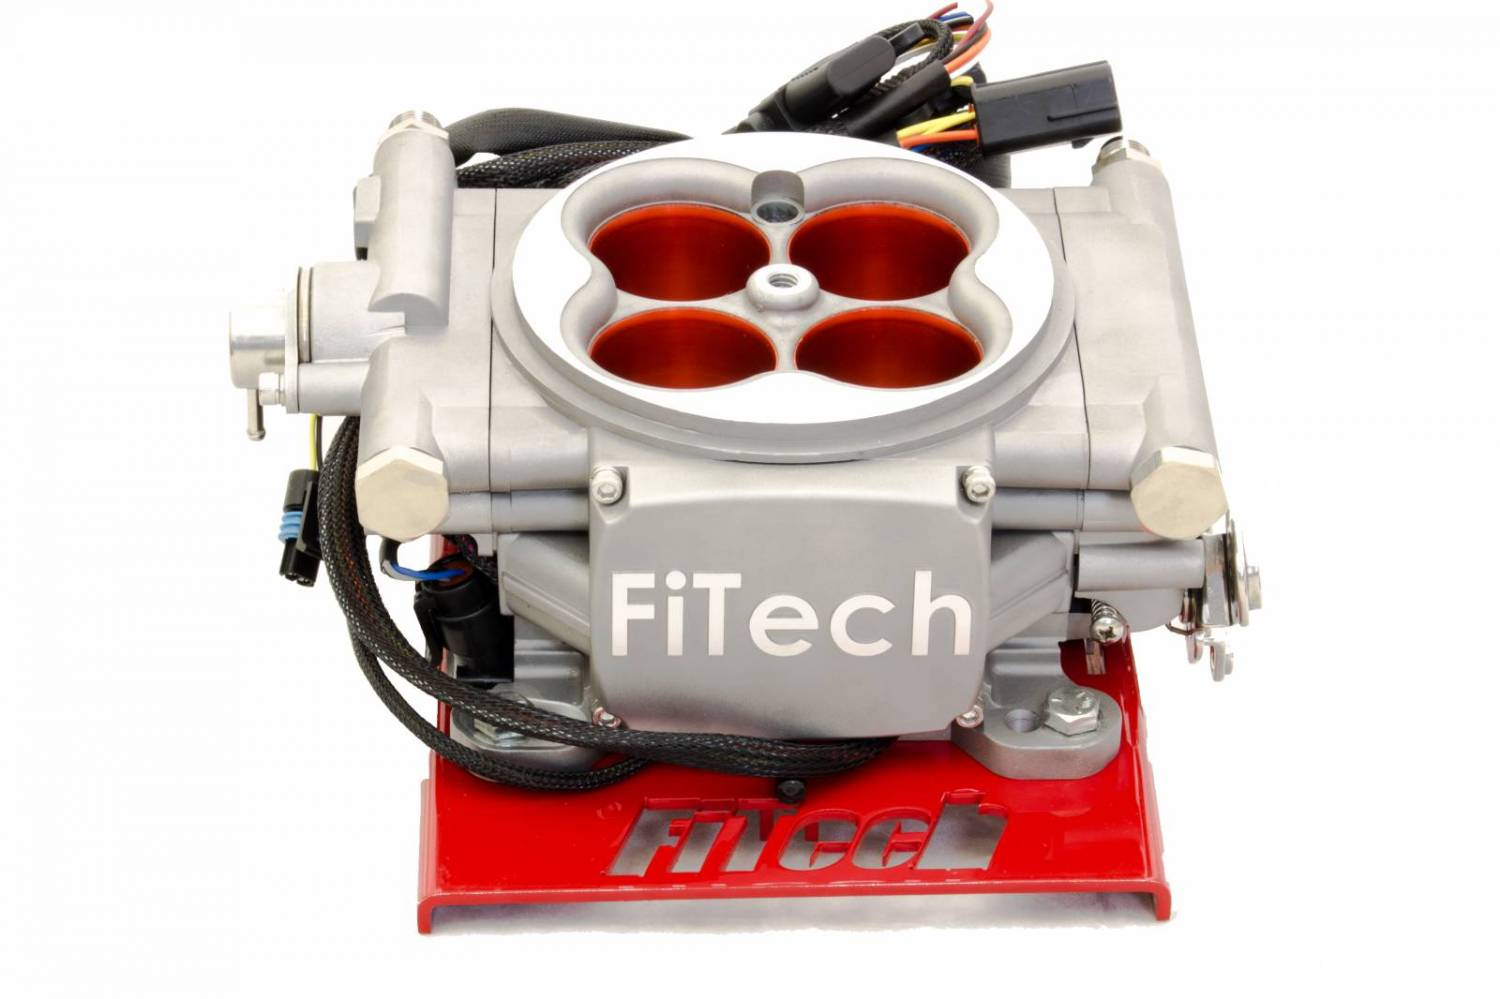 fth 30003 fitech go street 4 injector 400 hp carb swap efi system with cast finish. Black Bedroom Furniture Sets. Home Design Ideas